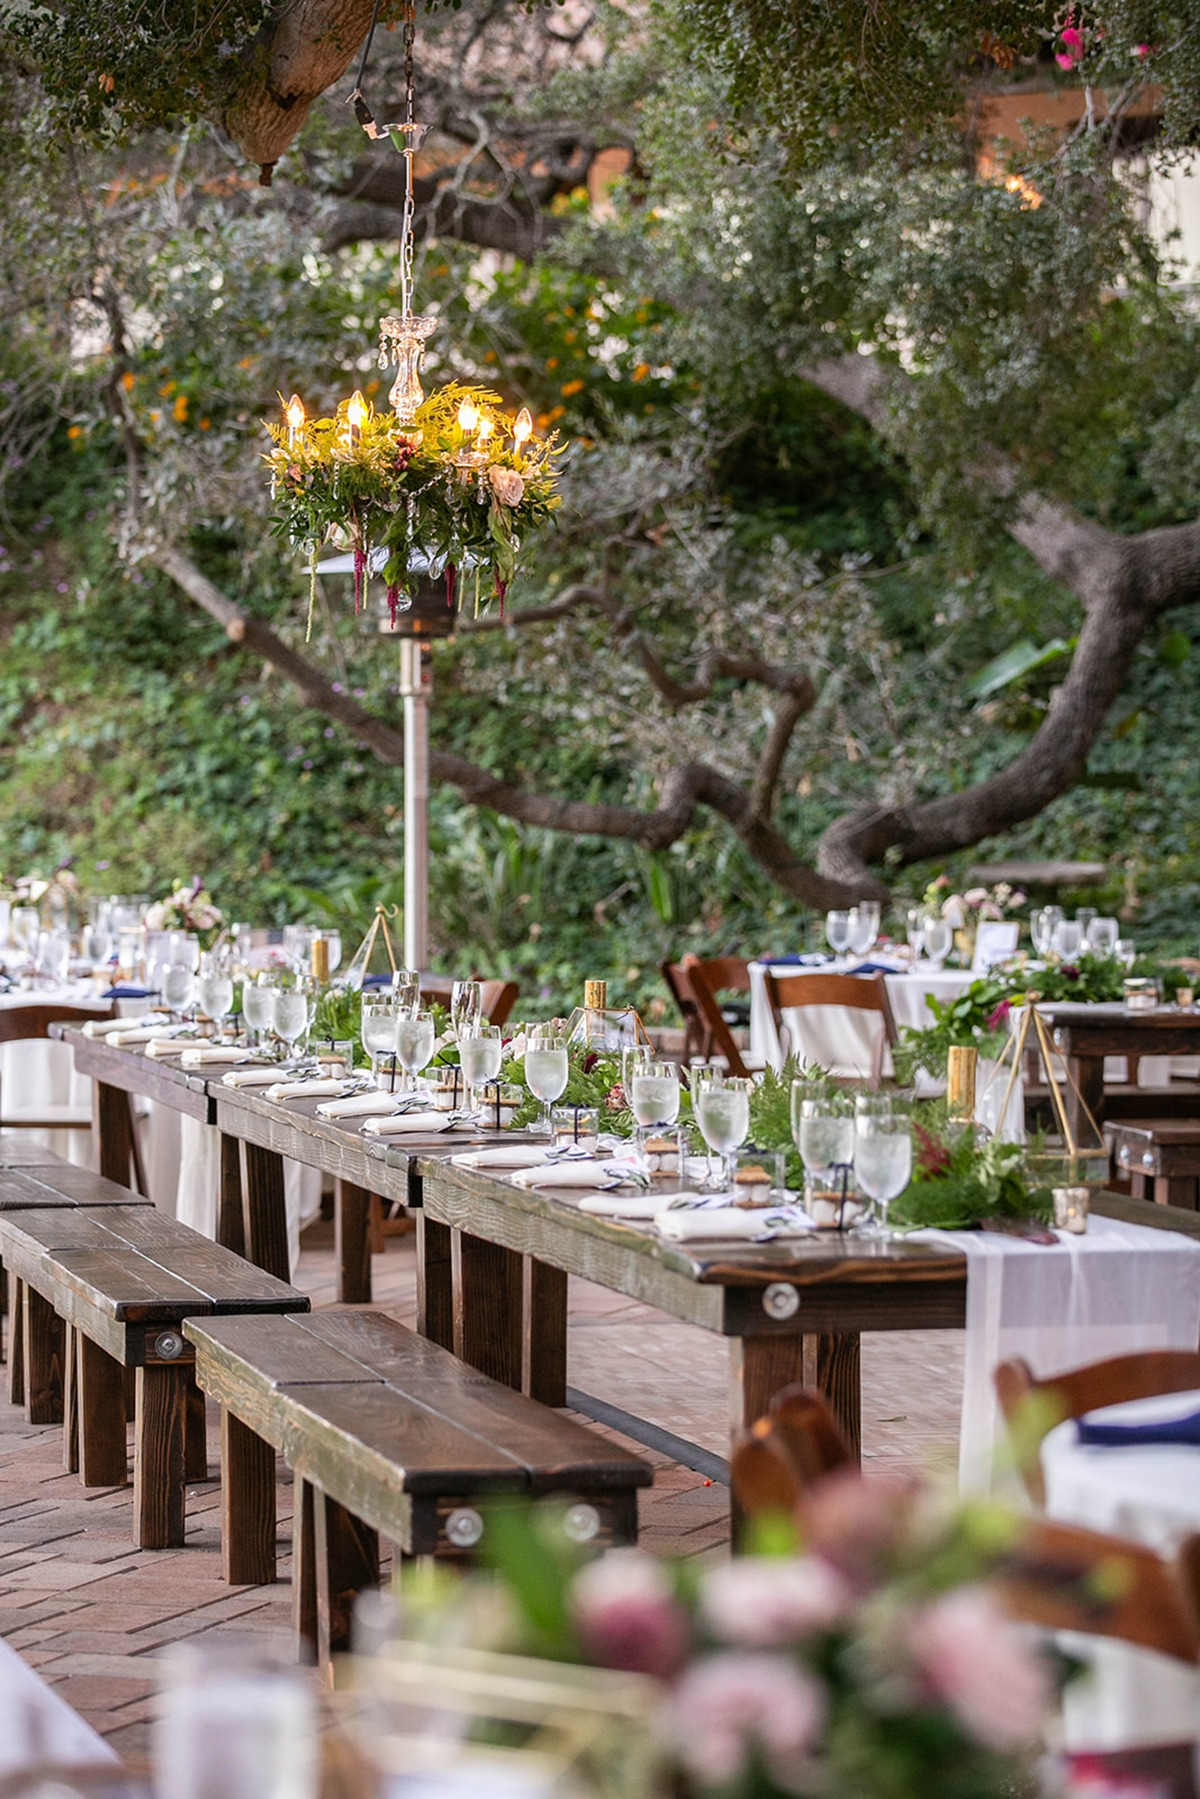 family style seating and outdoor chandeliers.